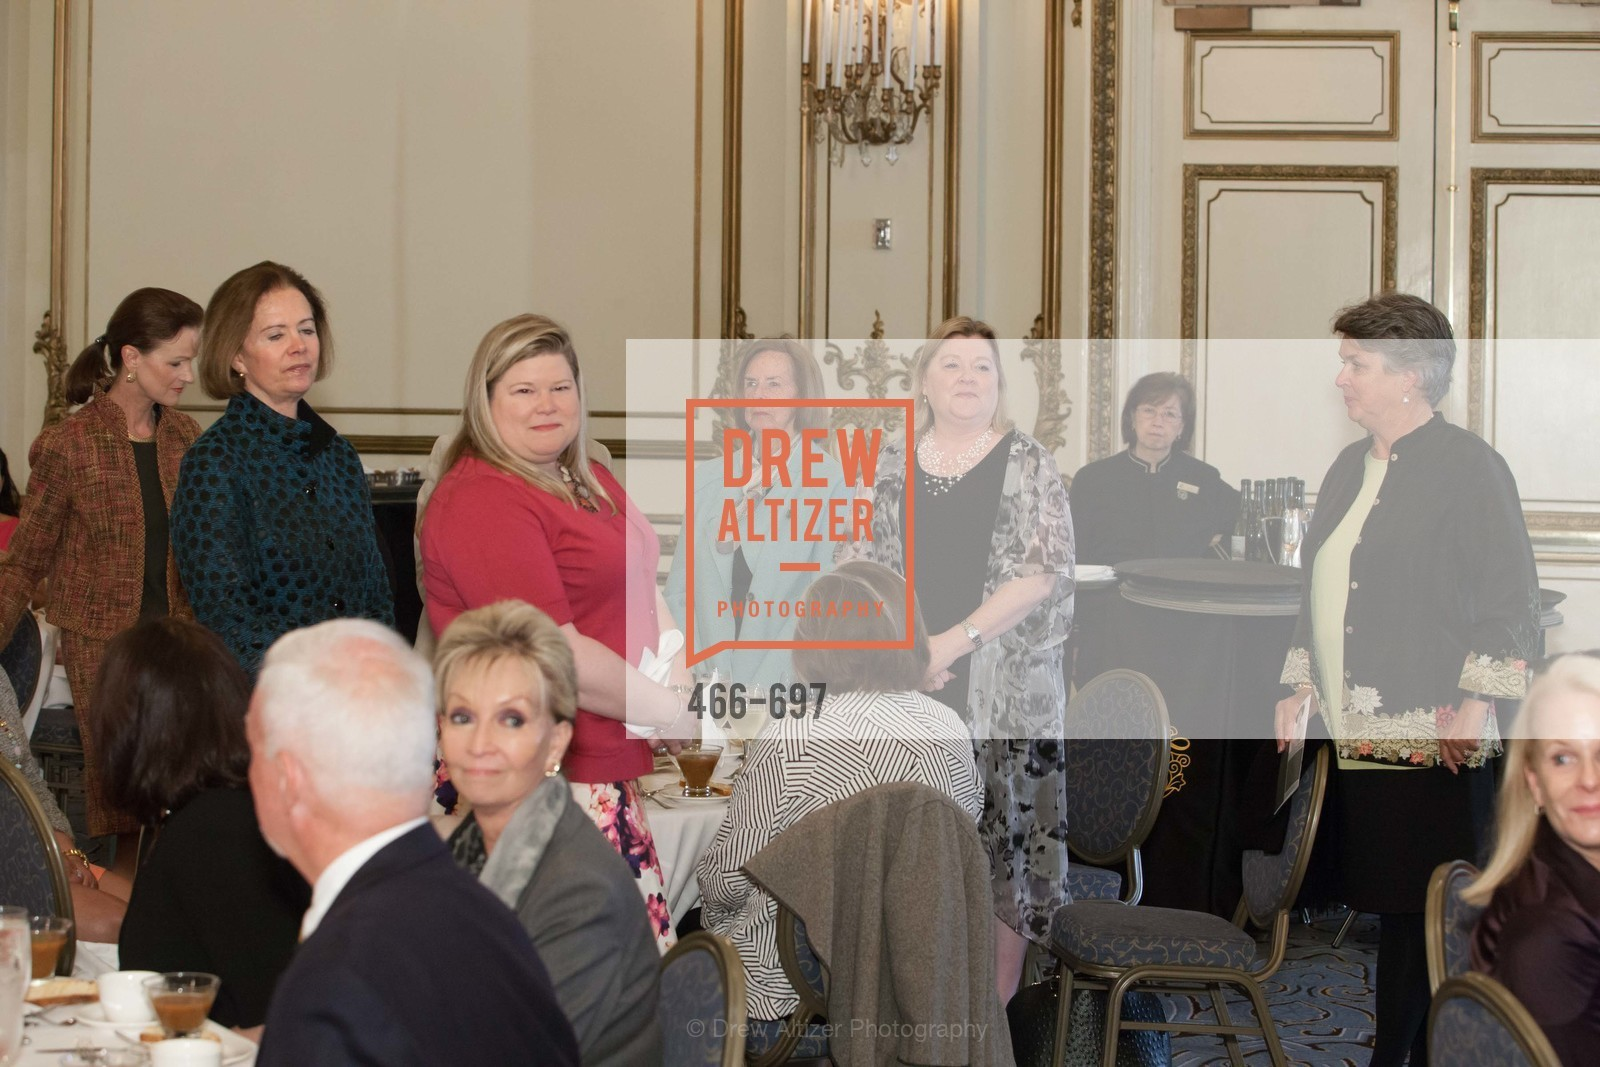 Kaki DelSautels, Jennifer Johnston, JUNIOR LEAGUE OF SAN FRANCISCO's WATCH Luncheon, US, May 4th, 2015,Drew Altizer, Drew Altizer Photography, full-service agency, private events, San Francisco photographer, photographer california